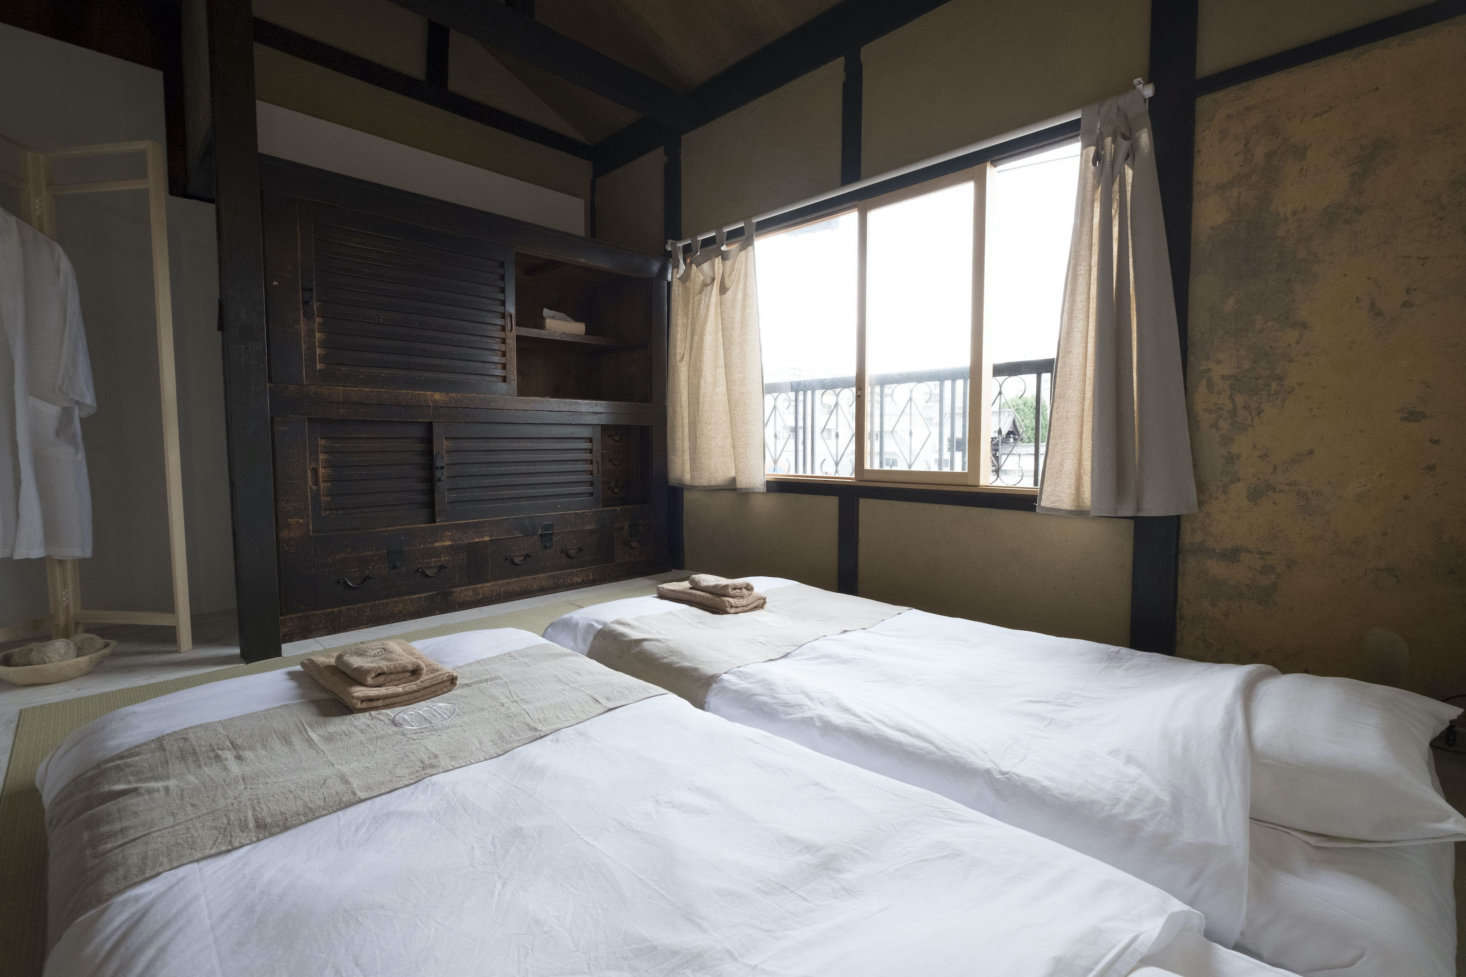 Two of the three bedrooms have twin futons on tatami mats. Temperature Studio in Taiwan designed the robes and towels, which also appear in the Day in Khaki shop. Stay tuned: a second historic house is in the process of being renovated as a rental.